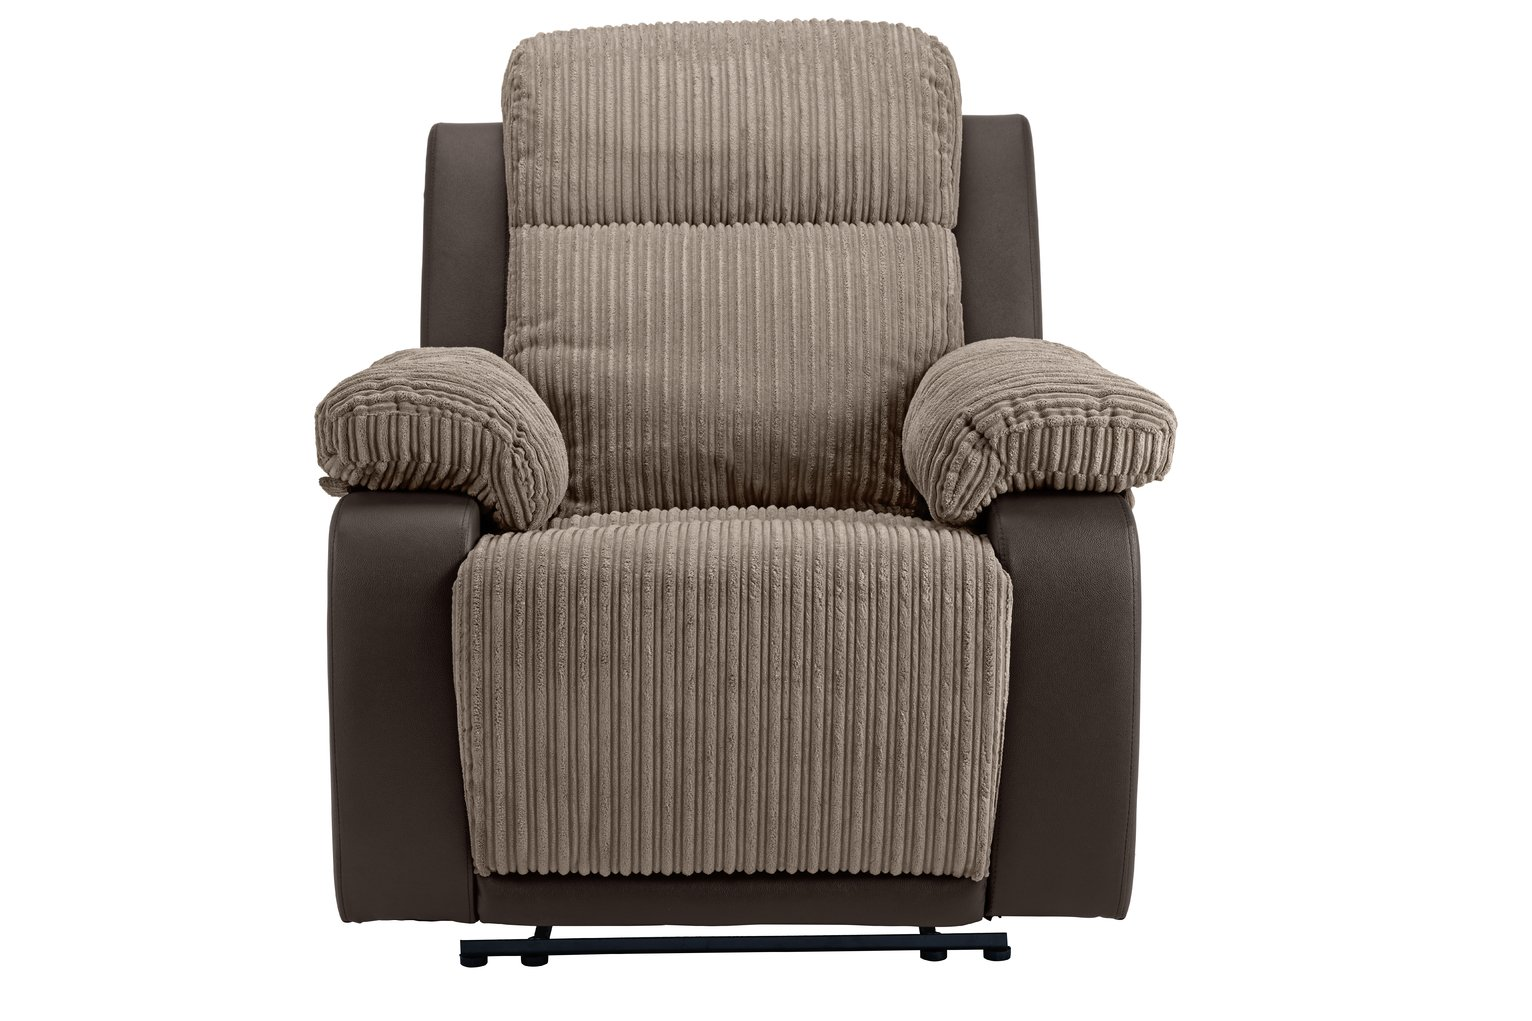 recliner chairs cheap hanging chair the sims 4 buy argos home bradley fabric manual natural